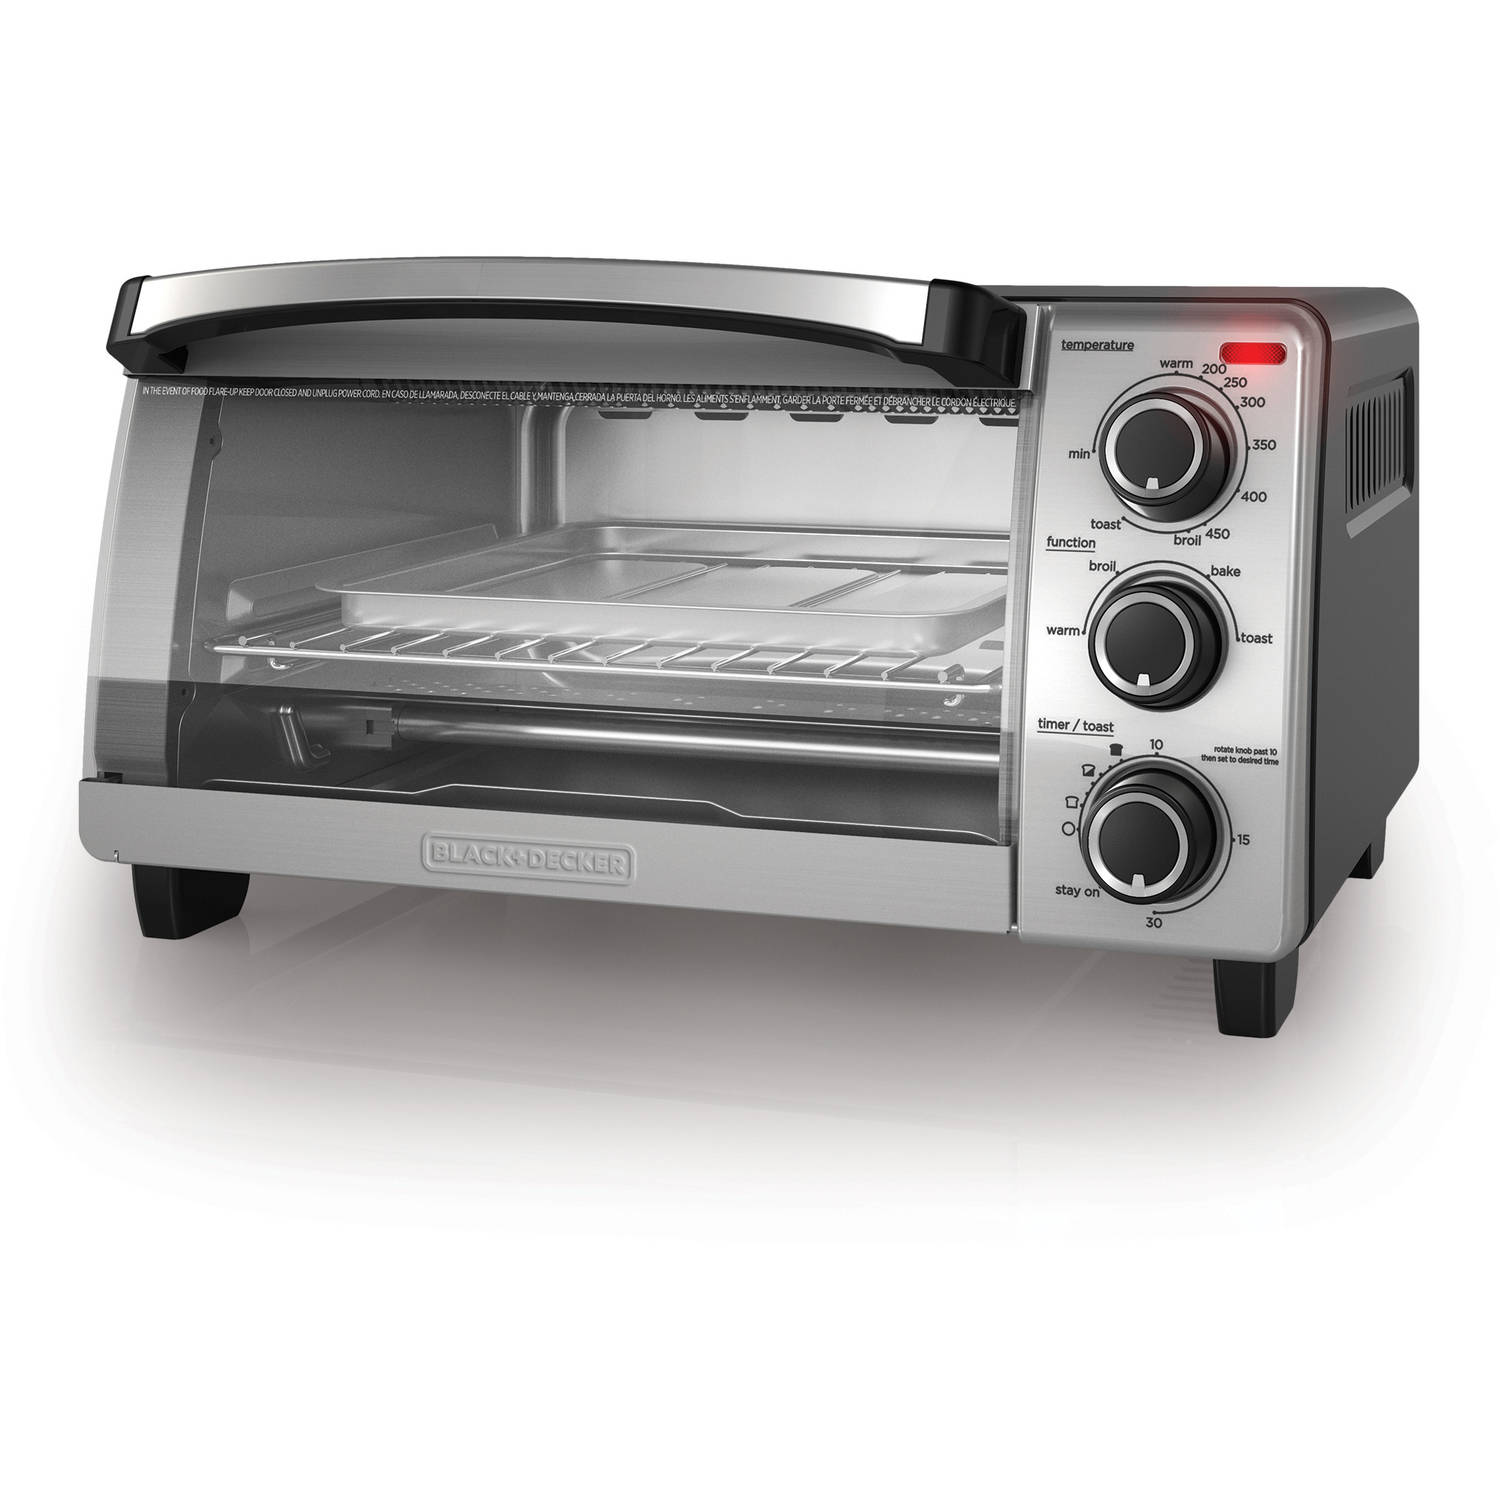 BLACK+DECKER 4-Slice Toaster Oven, Natural Convection, TO1755SB by Black & Decker